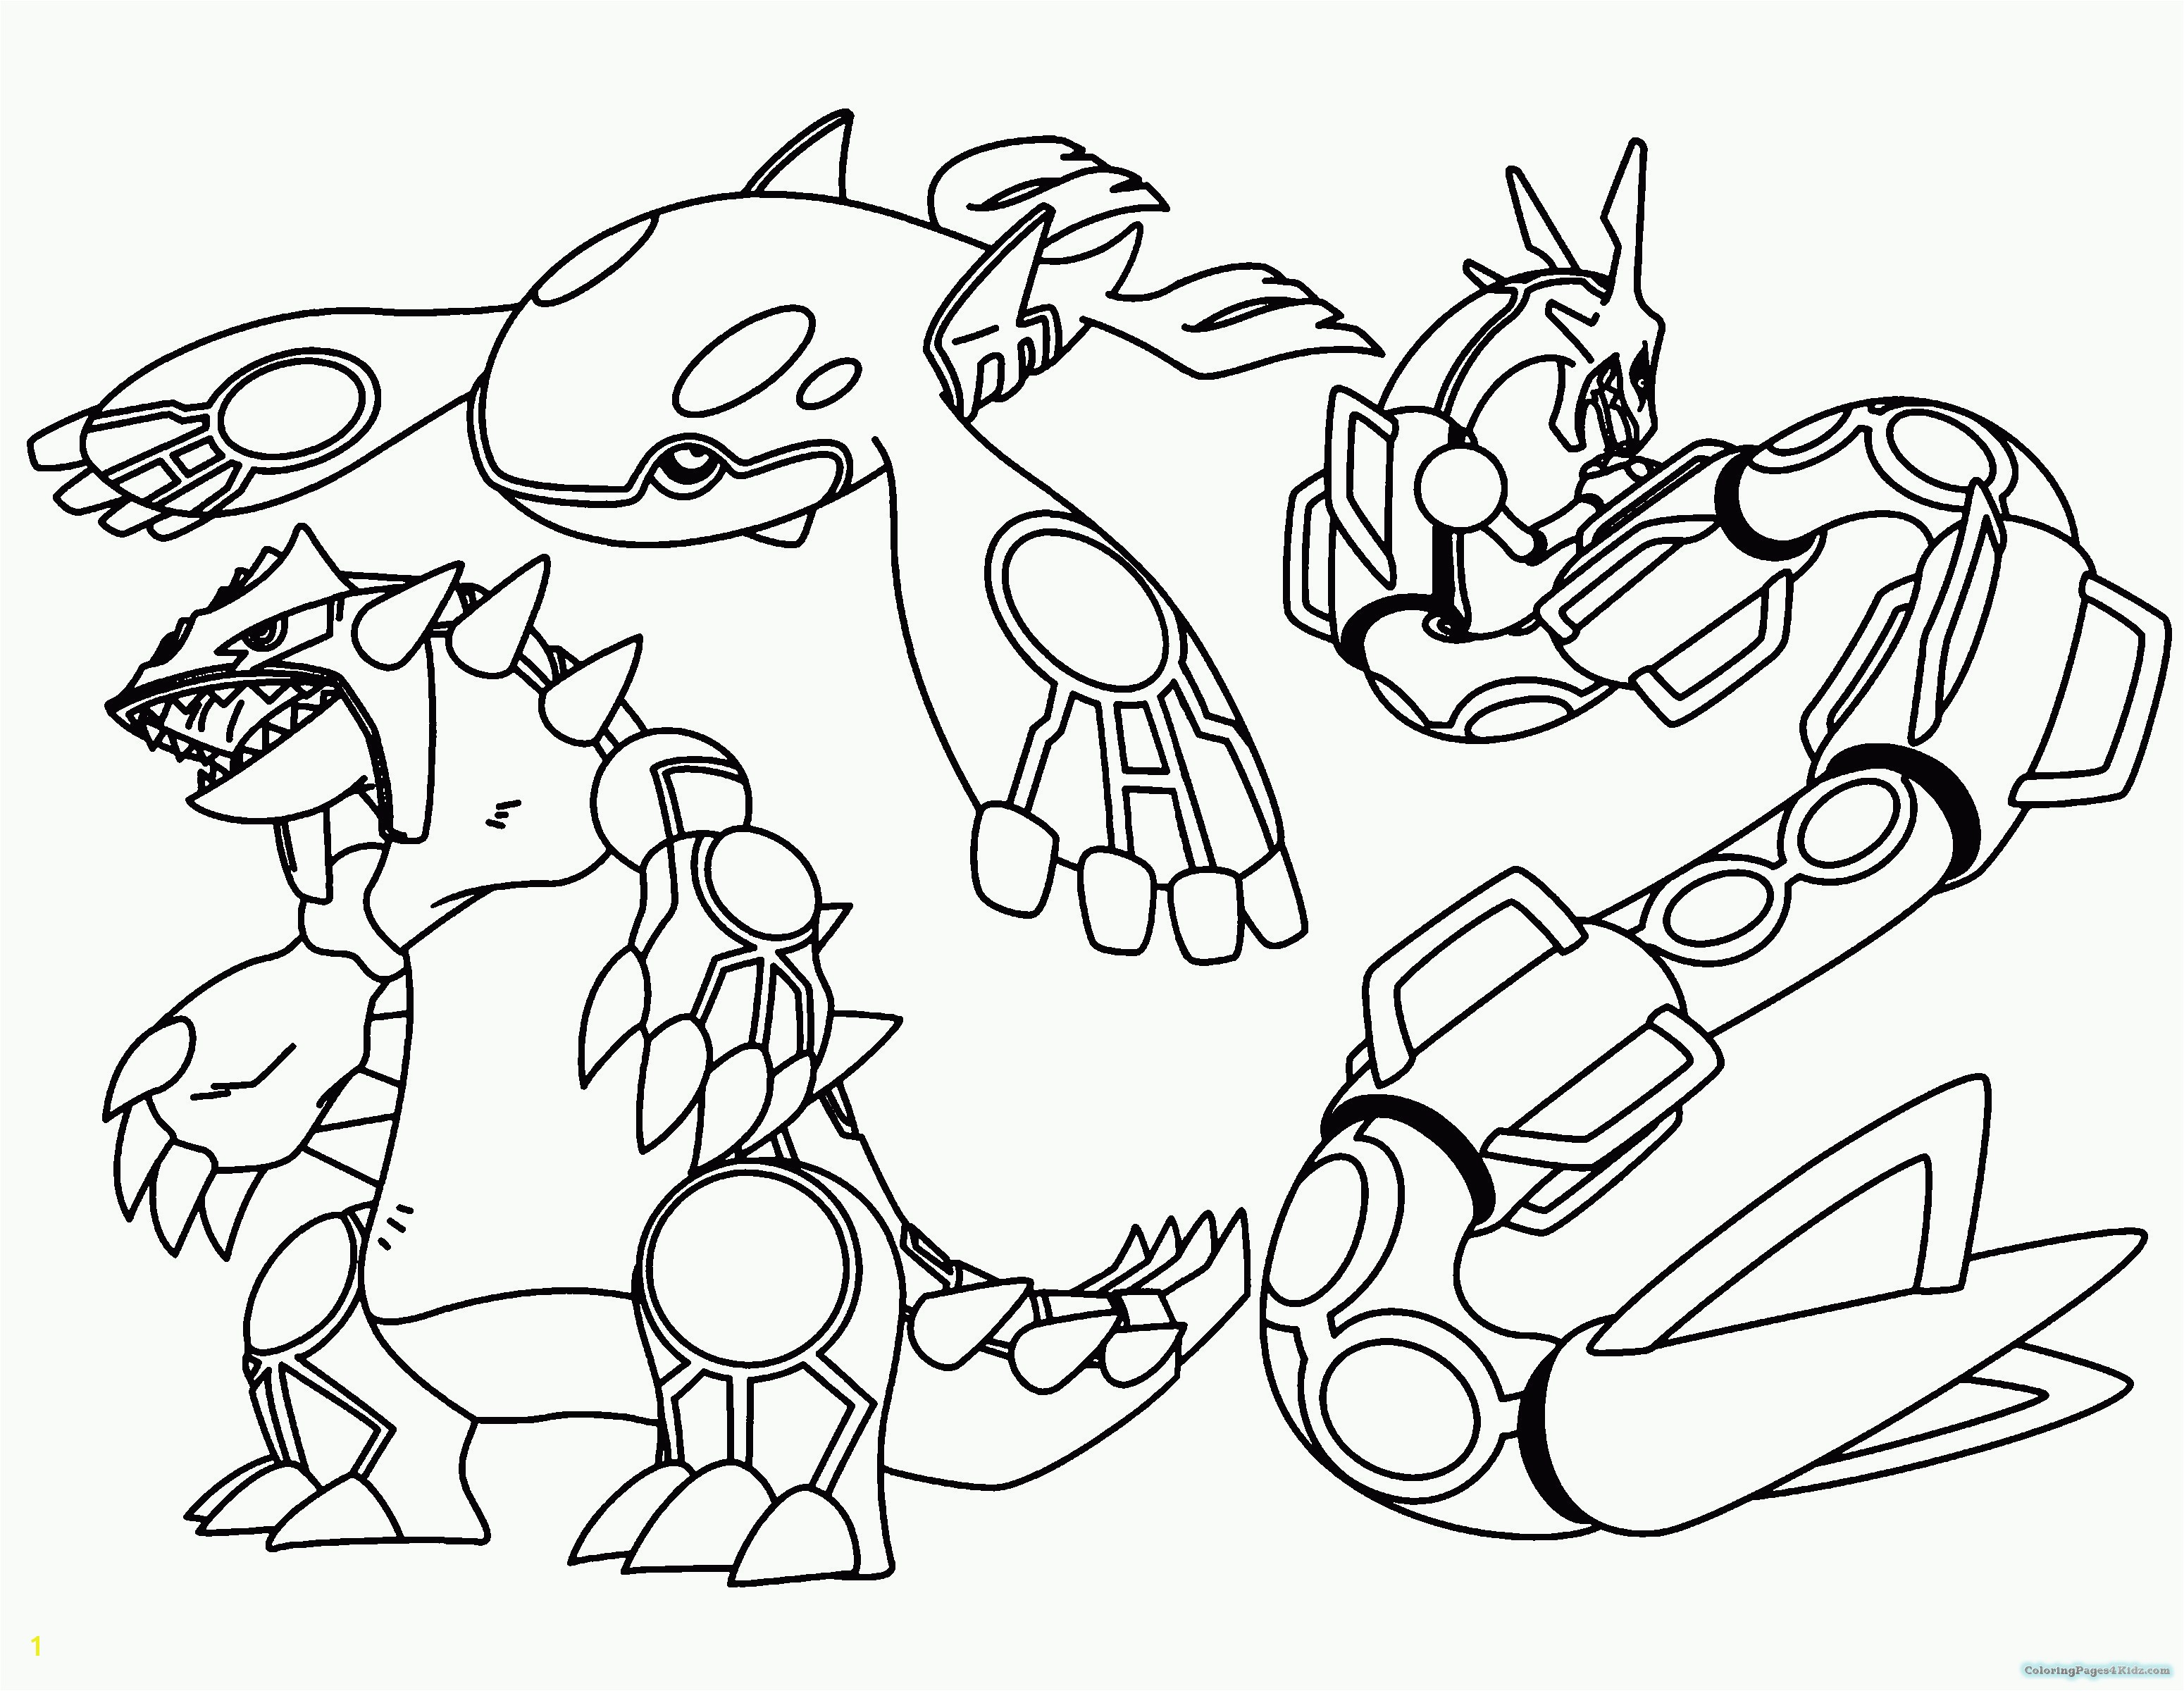 Legendary Pokemon Coloring Pages Free Printable Pages to Color Valid Mainstream All Legendary Pokemon